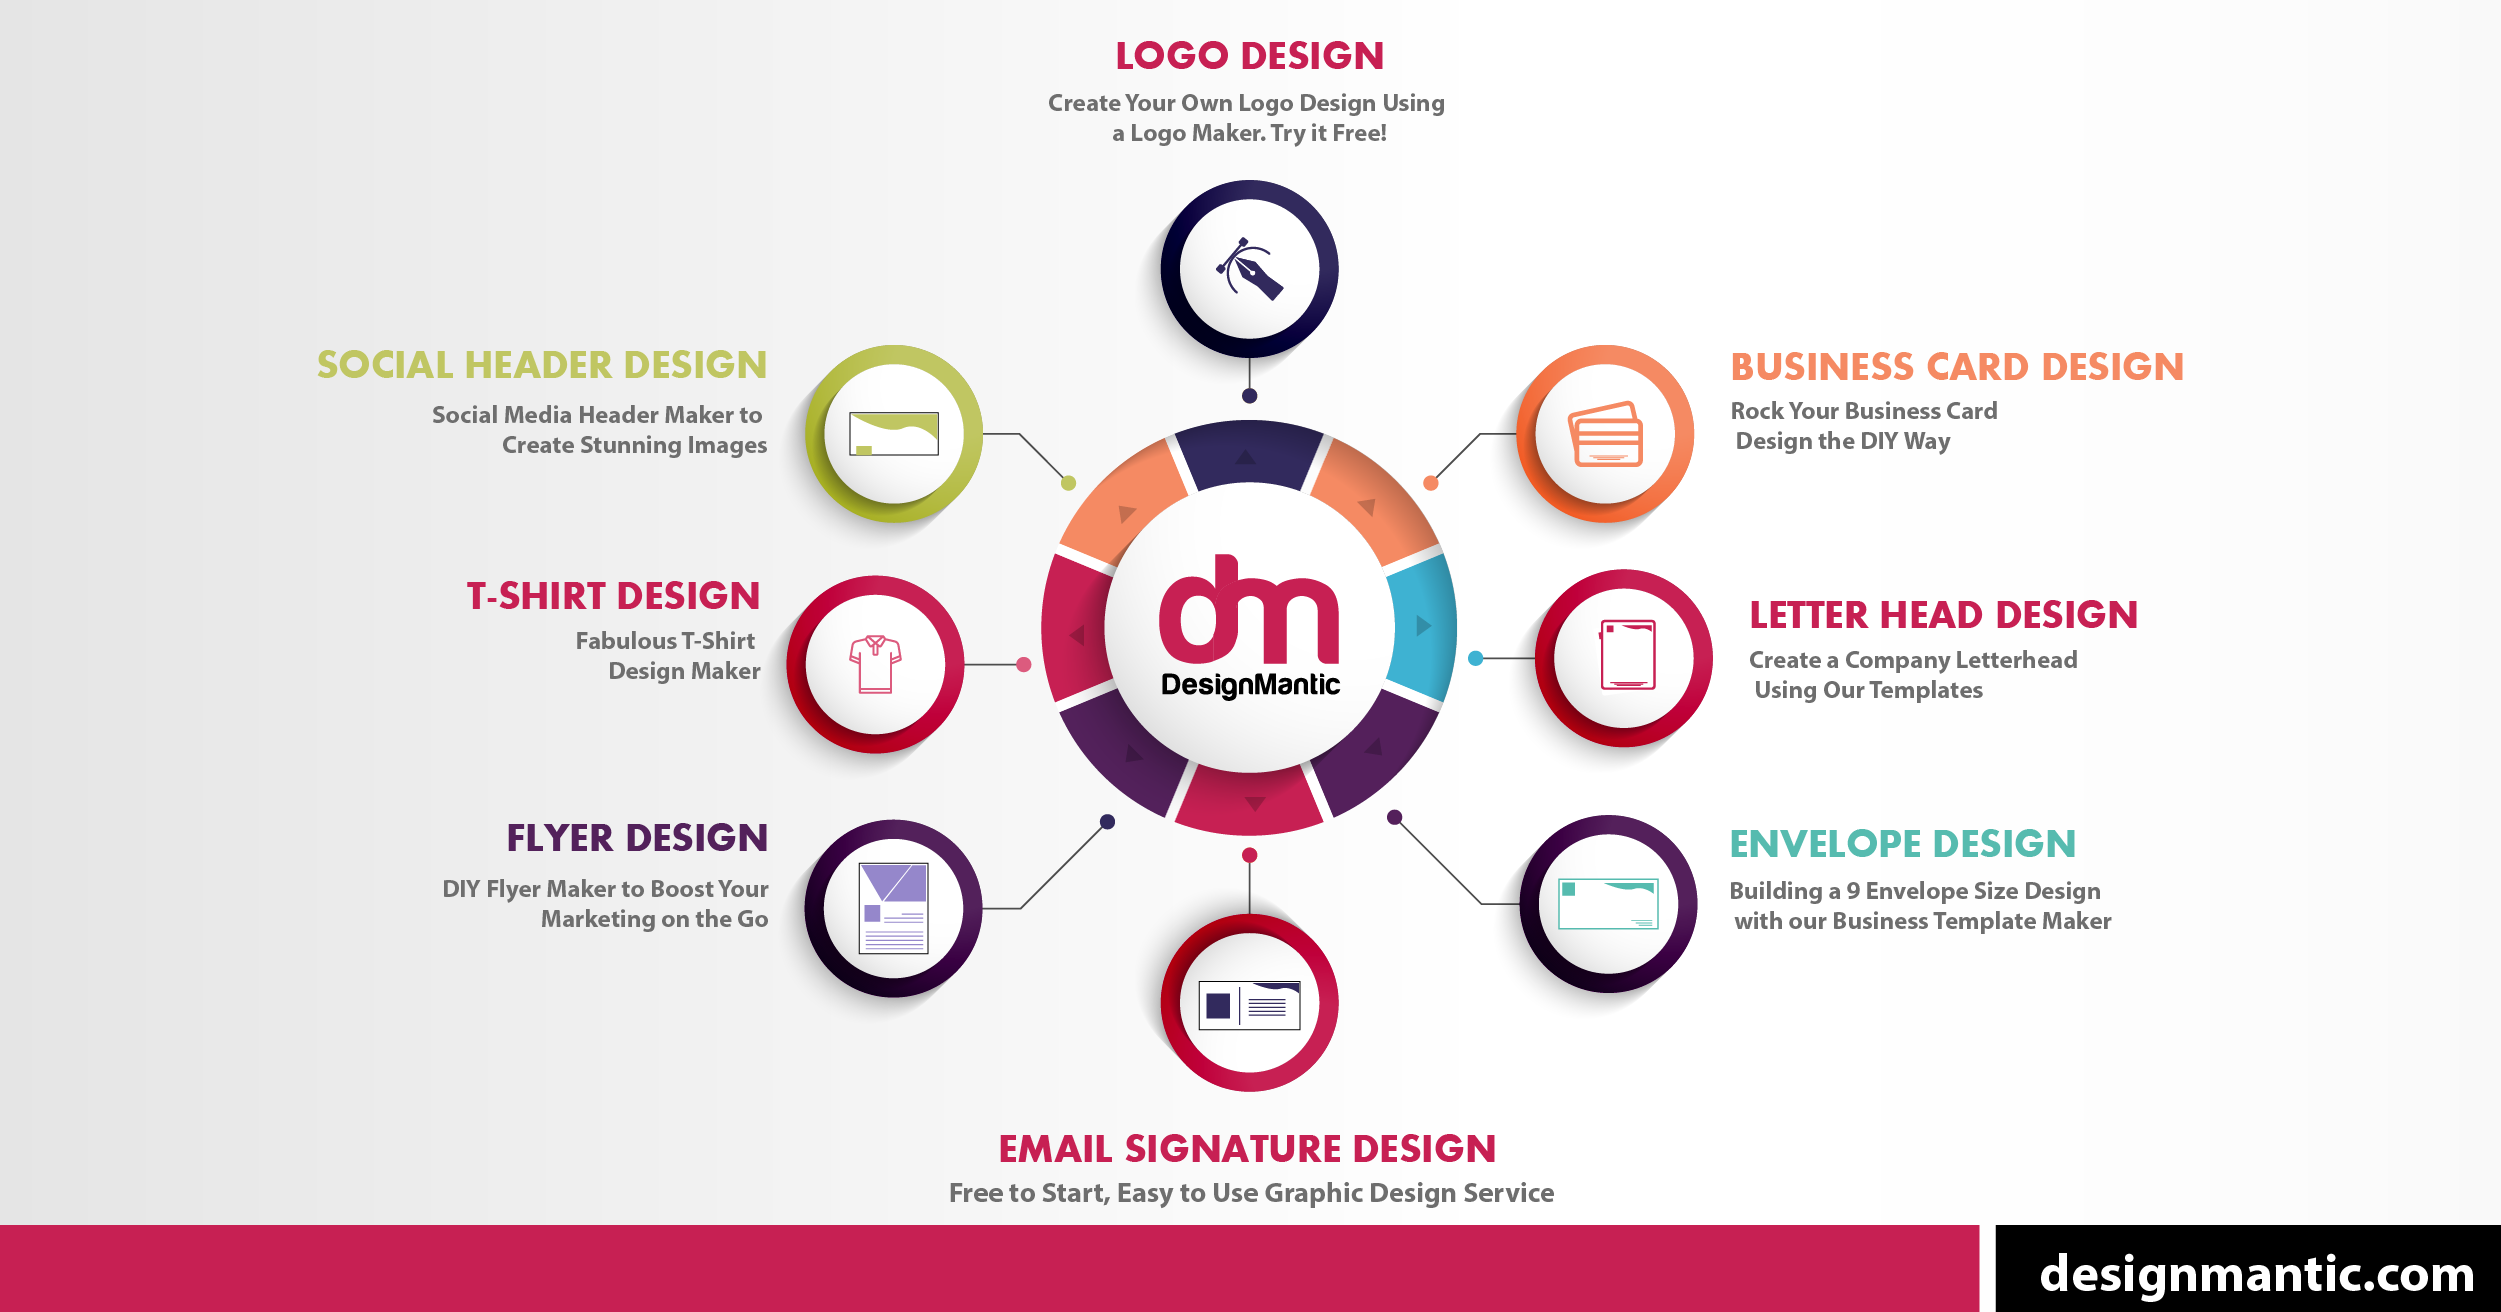 Logo Design Using AI Logo Maker Tool | DesignMantic: The